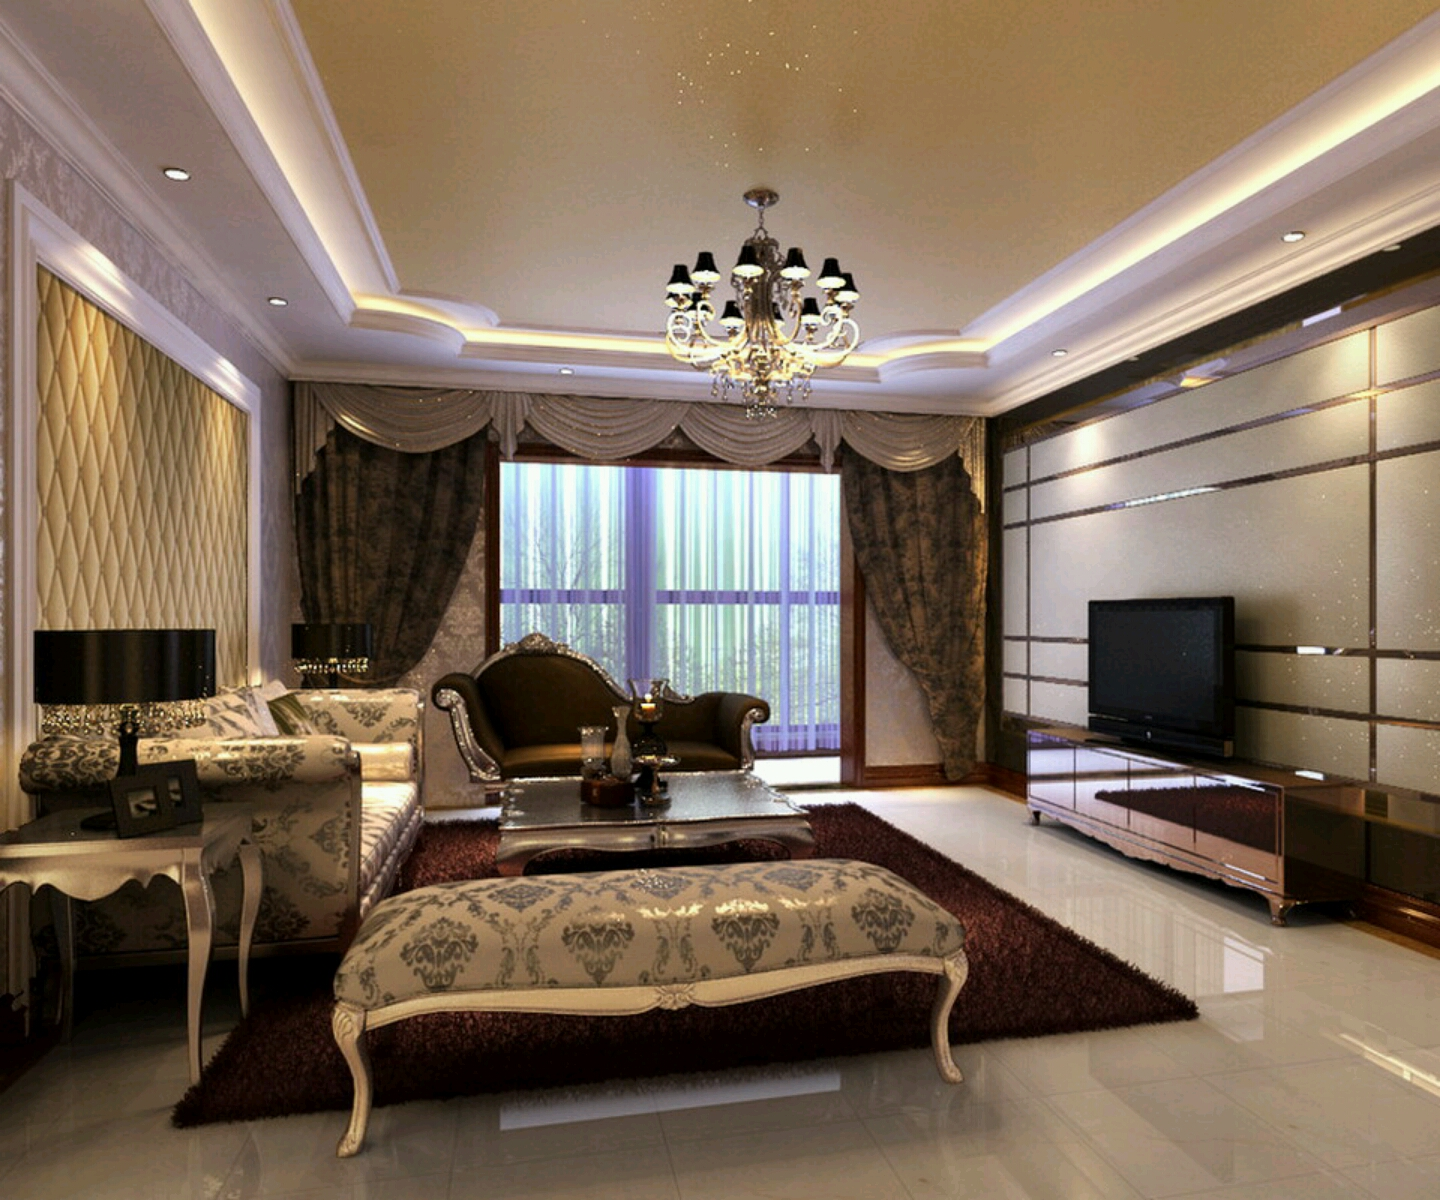 Interior decorating ideas living rooms dream house for Interior designs for bedrooms ideas